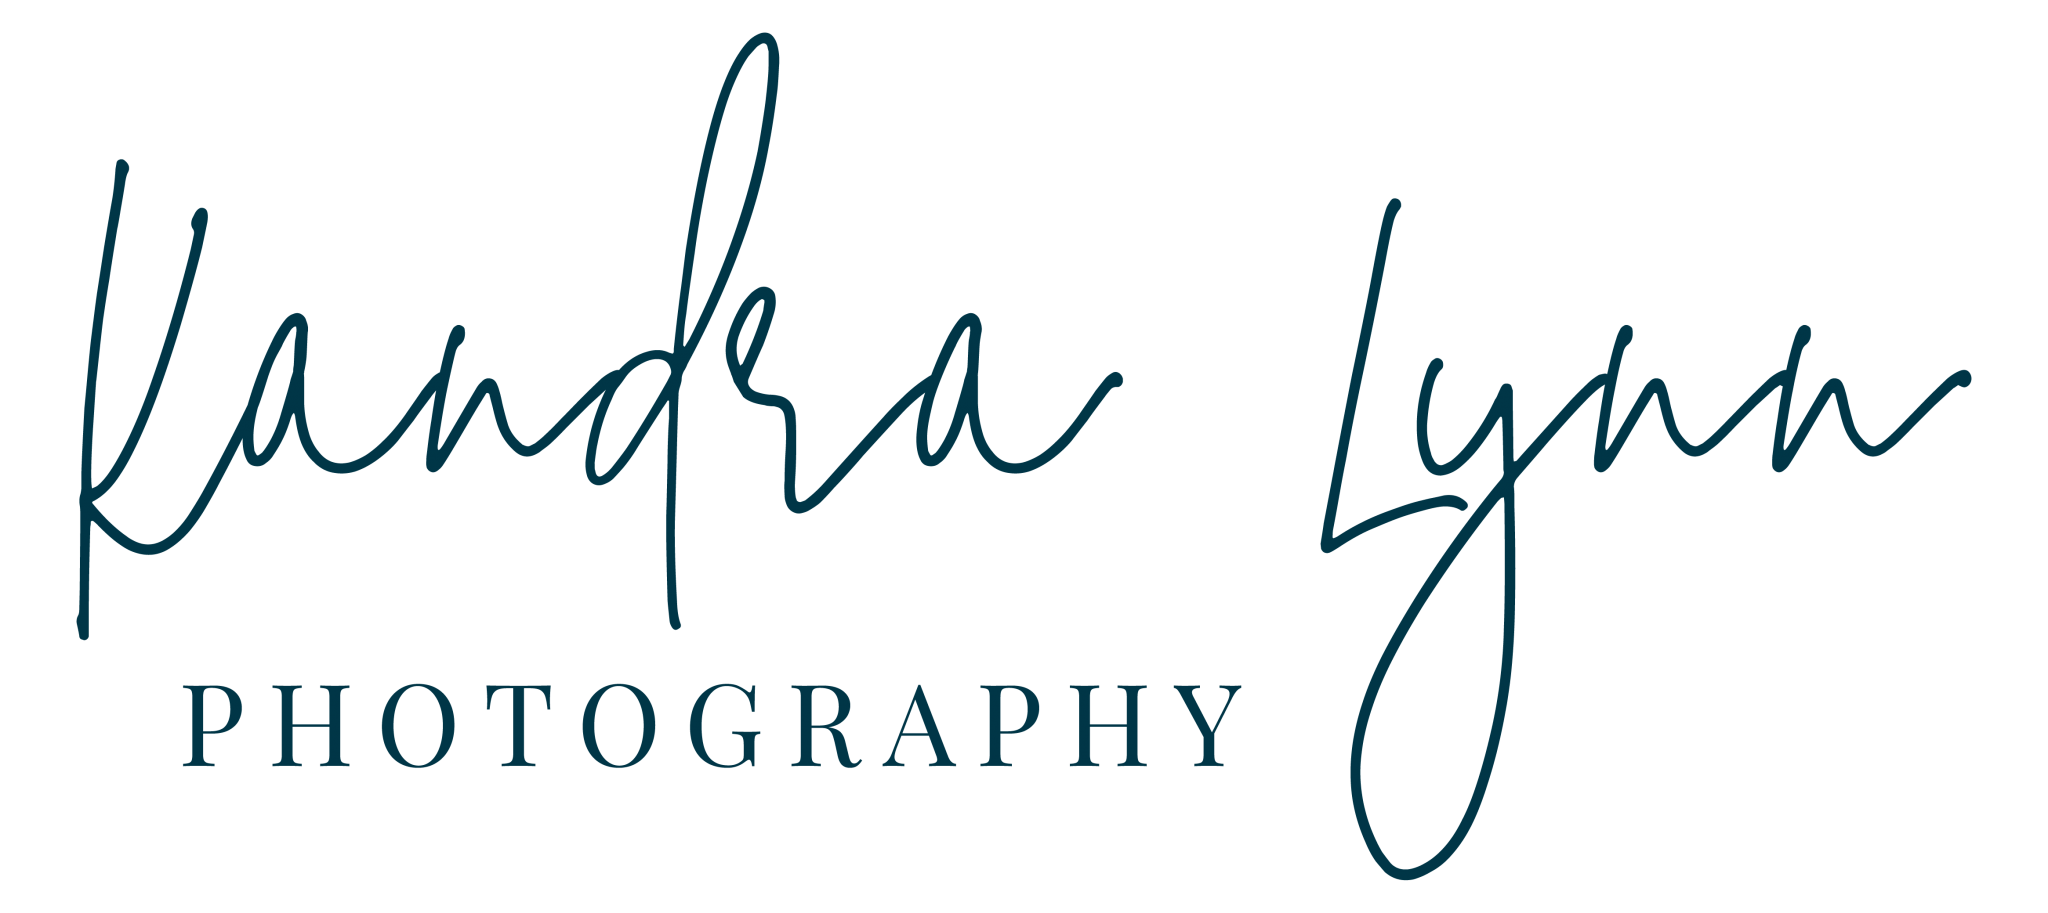 Kandra Lynn Photography